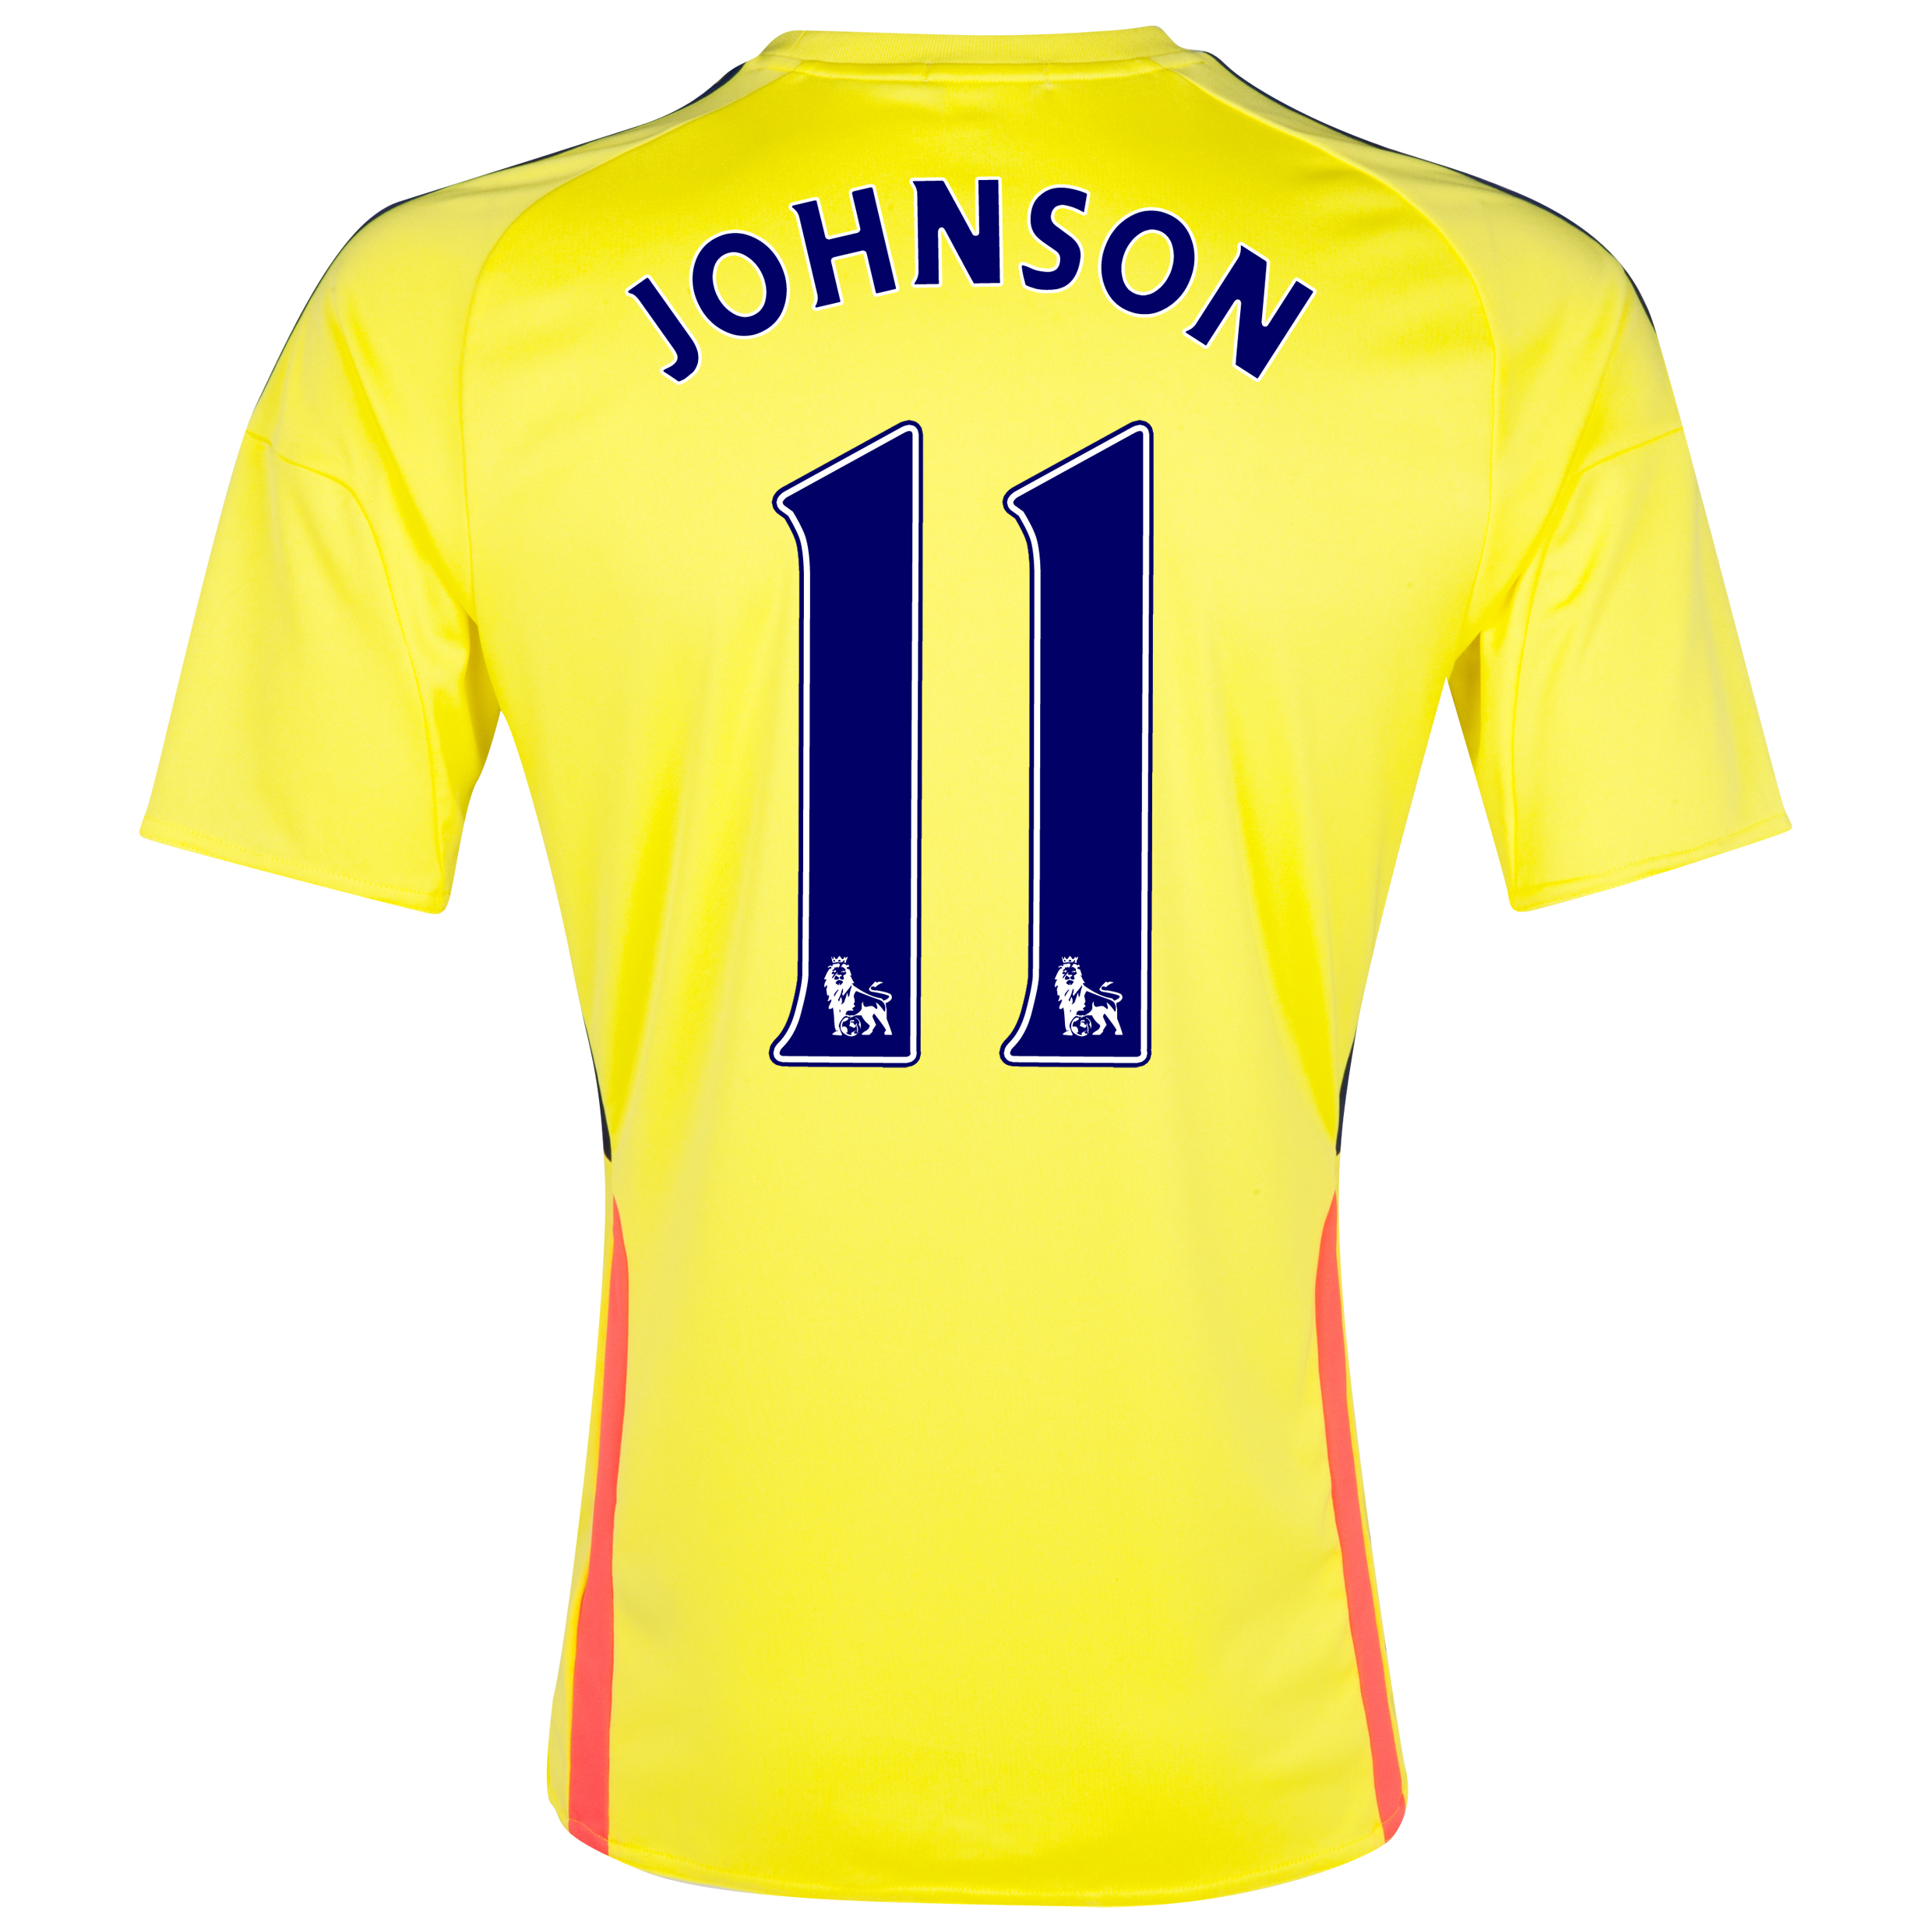 Sunderland Away Shirt 2013/14 with Johnson 11 printing